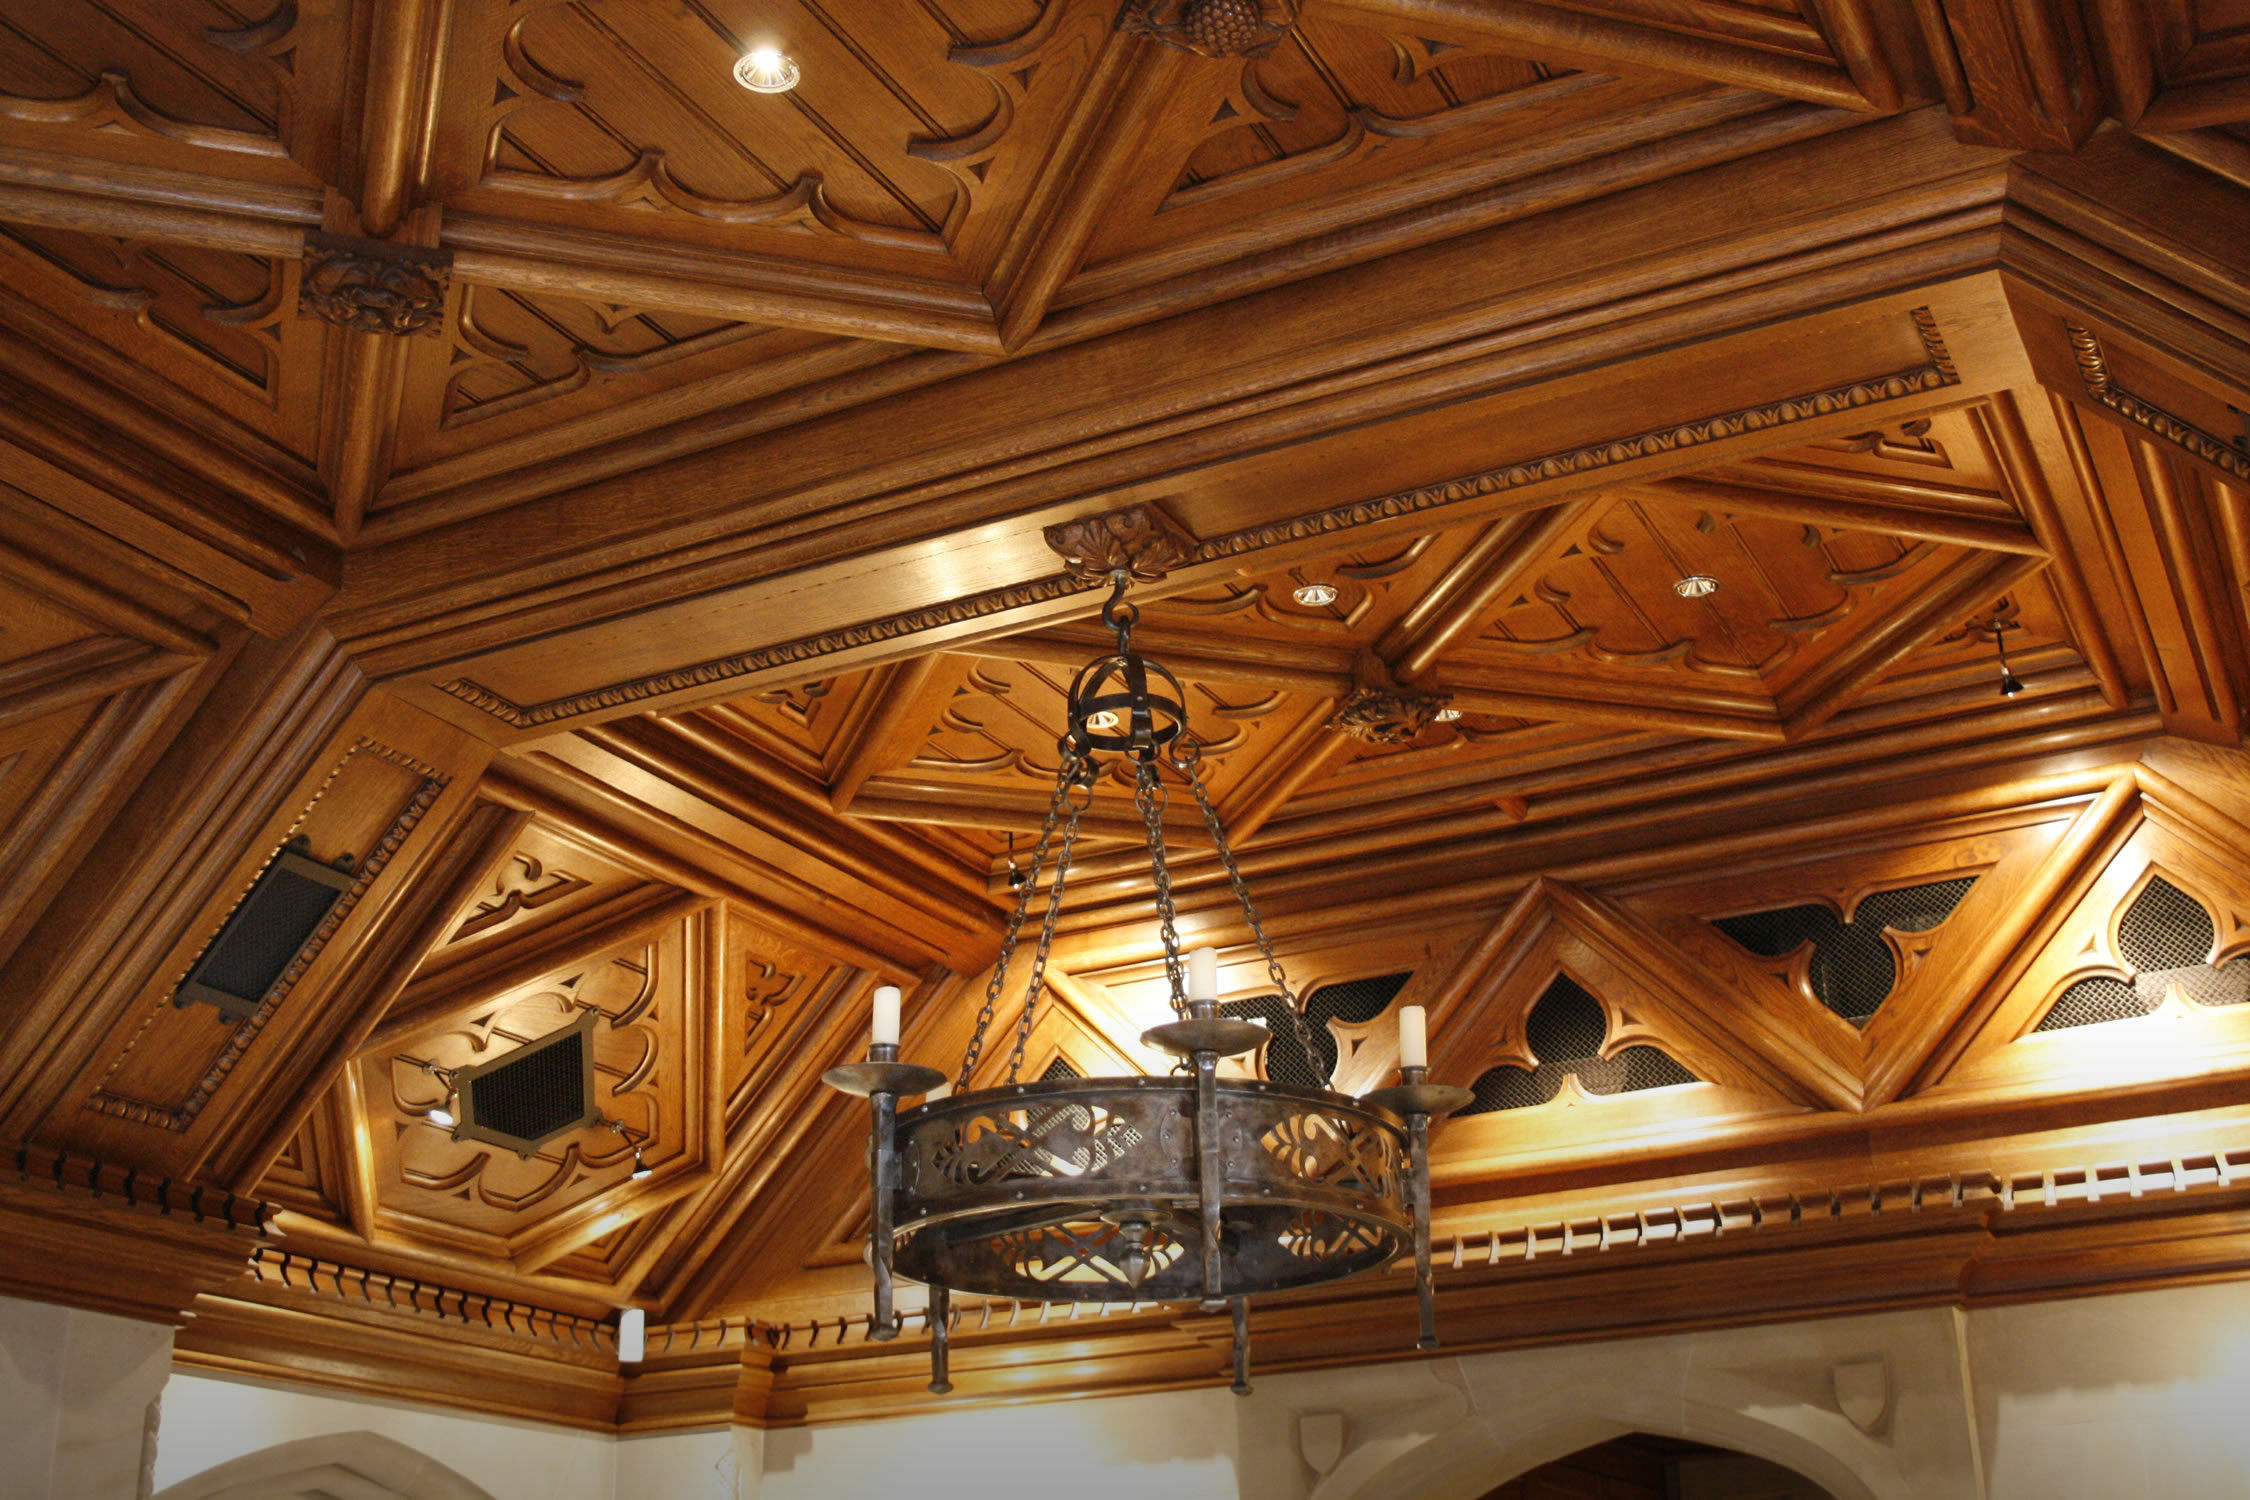 Gothic style solid oak ceiling